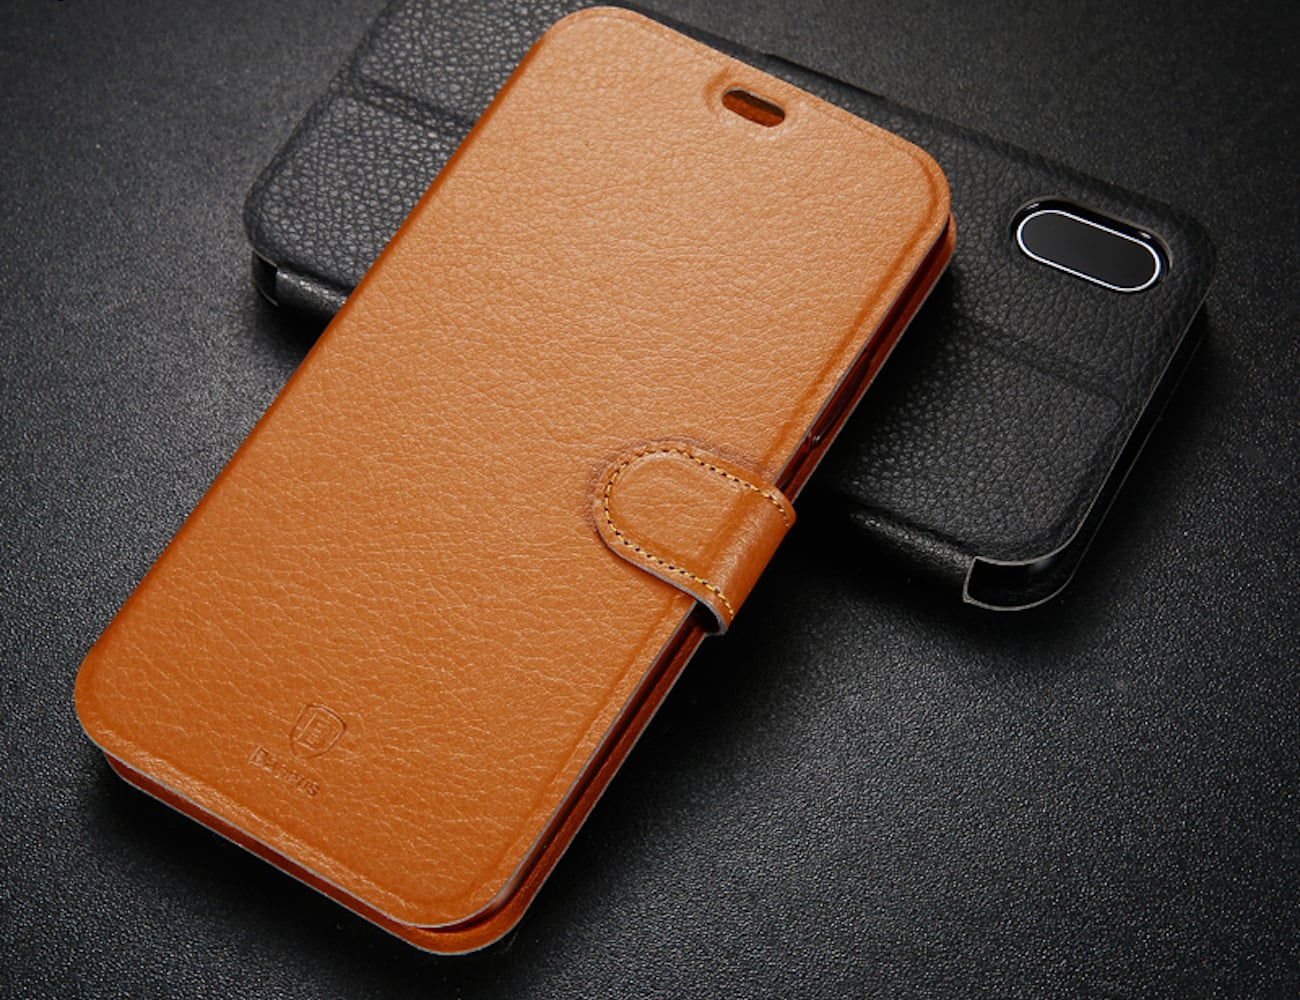 Fashionable Flip Wallet iPhone X Case